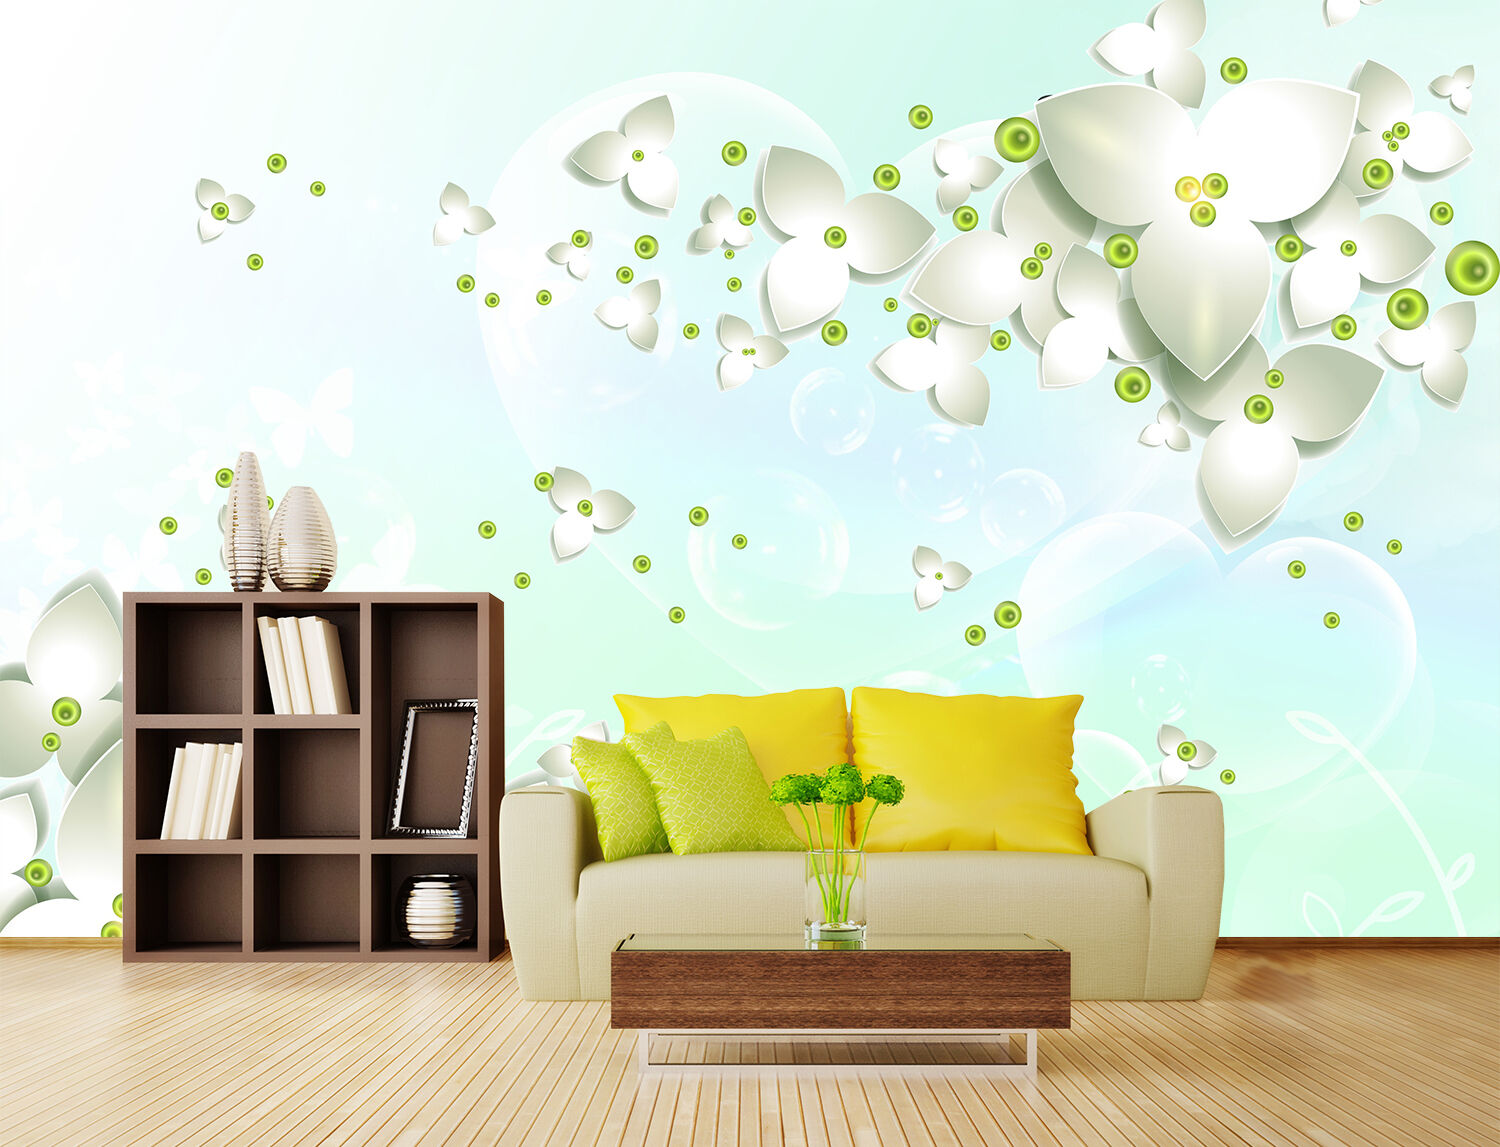 3D Bubble Pattern Flowers 20 Paper Wall Print Wall Decal Wall Deco Indoor Murals